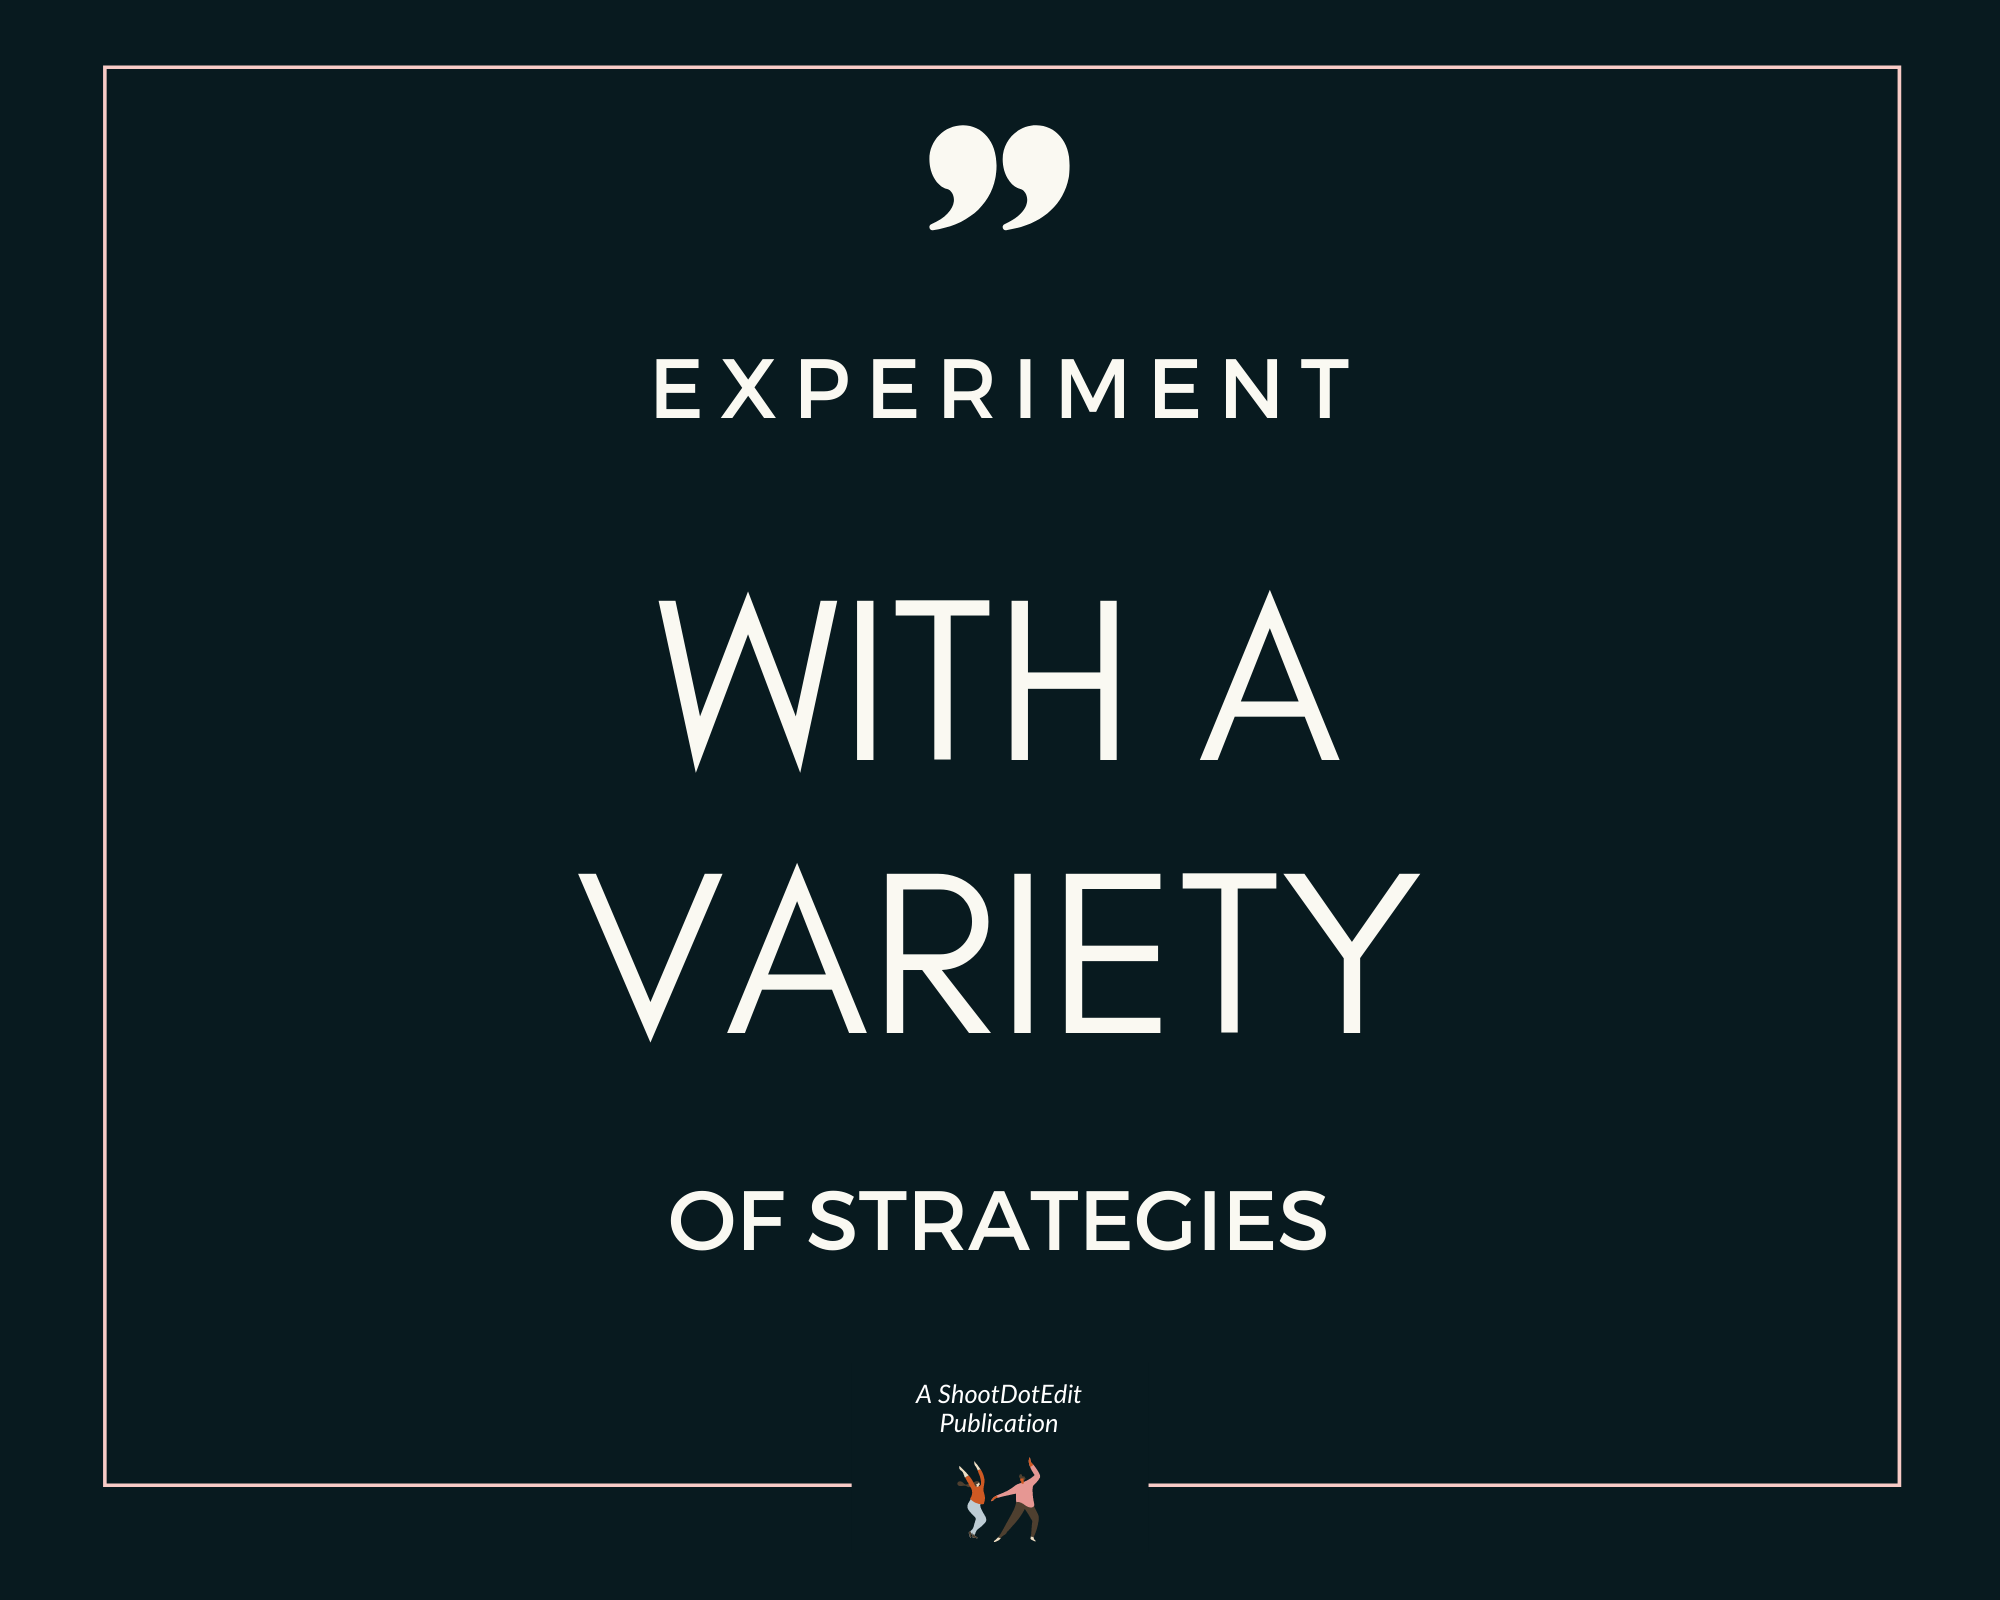 Infographic stating experiment with a variety of strategies